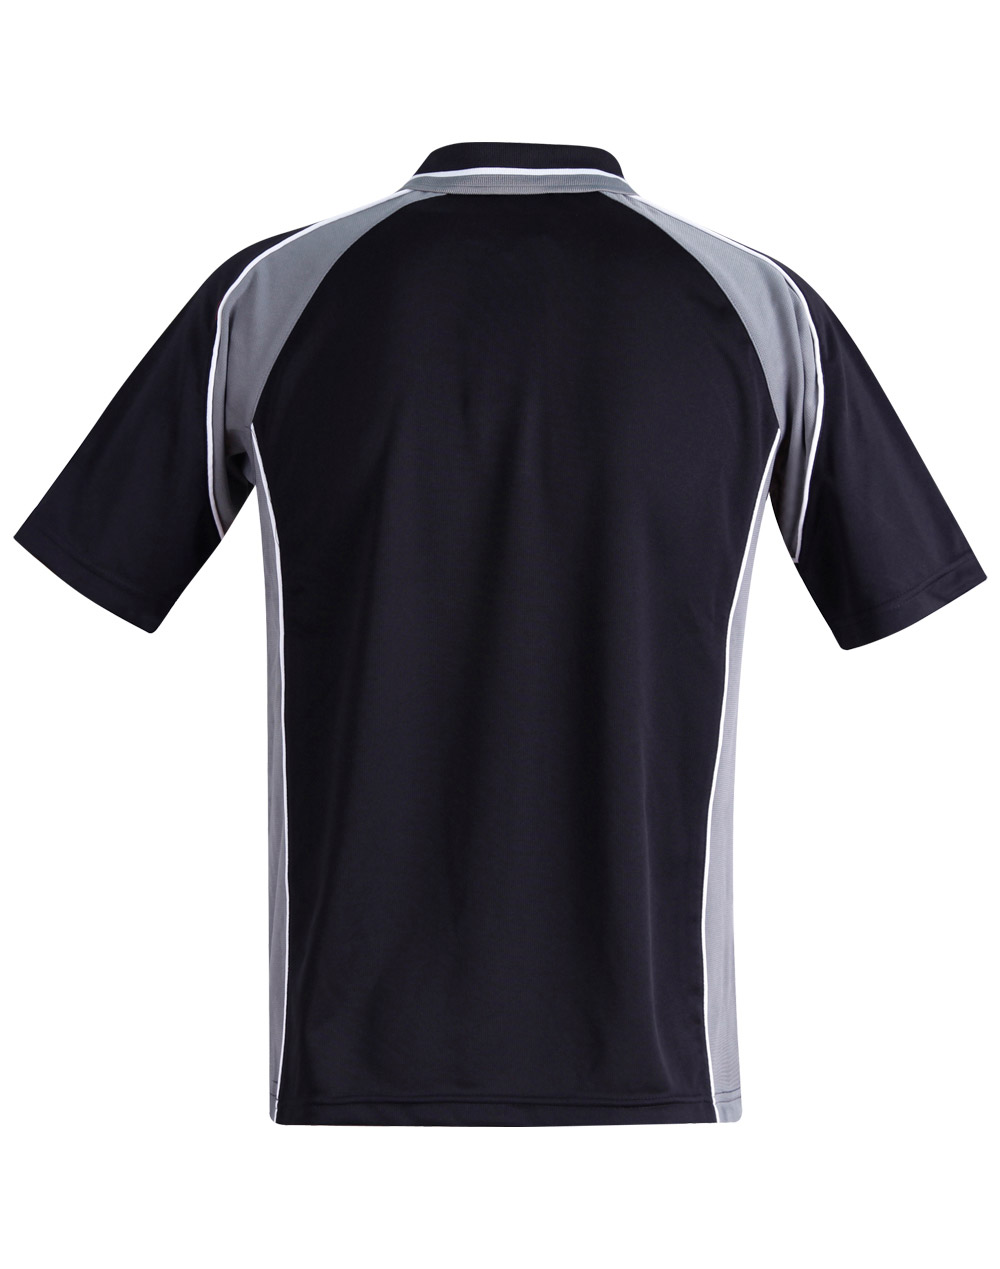 https://s3-ap-southeast-1.amazonaws.com/ws-imgs/POLOSHIRTS/PS49_BlackAsh_Back.jpg